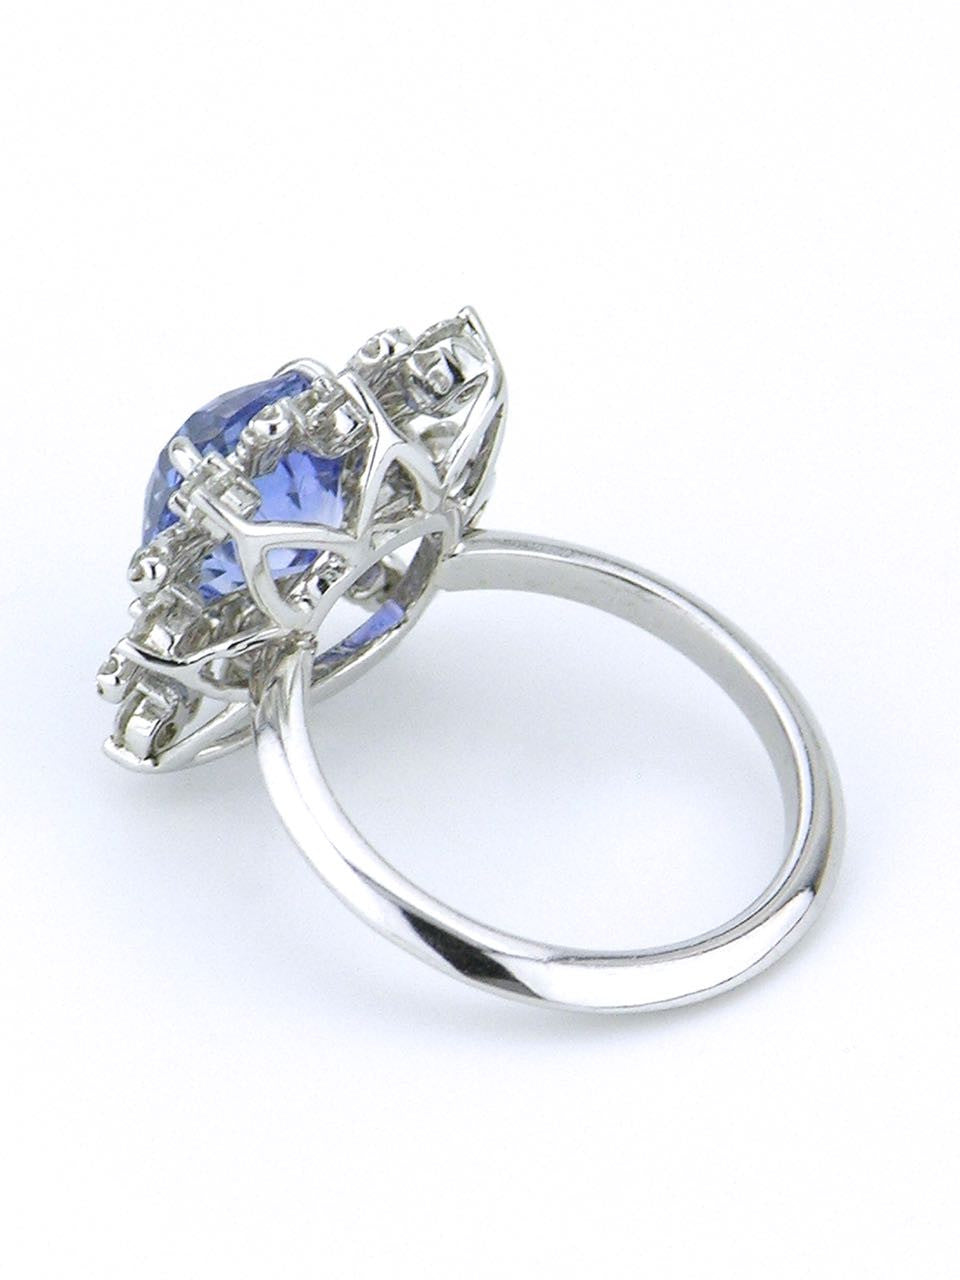 Vintage Ceylon Sapphire and Diamond Platinum Cluster Ring